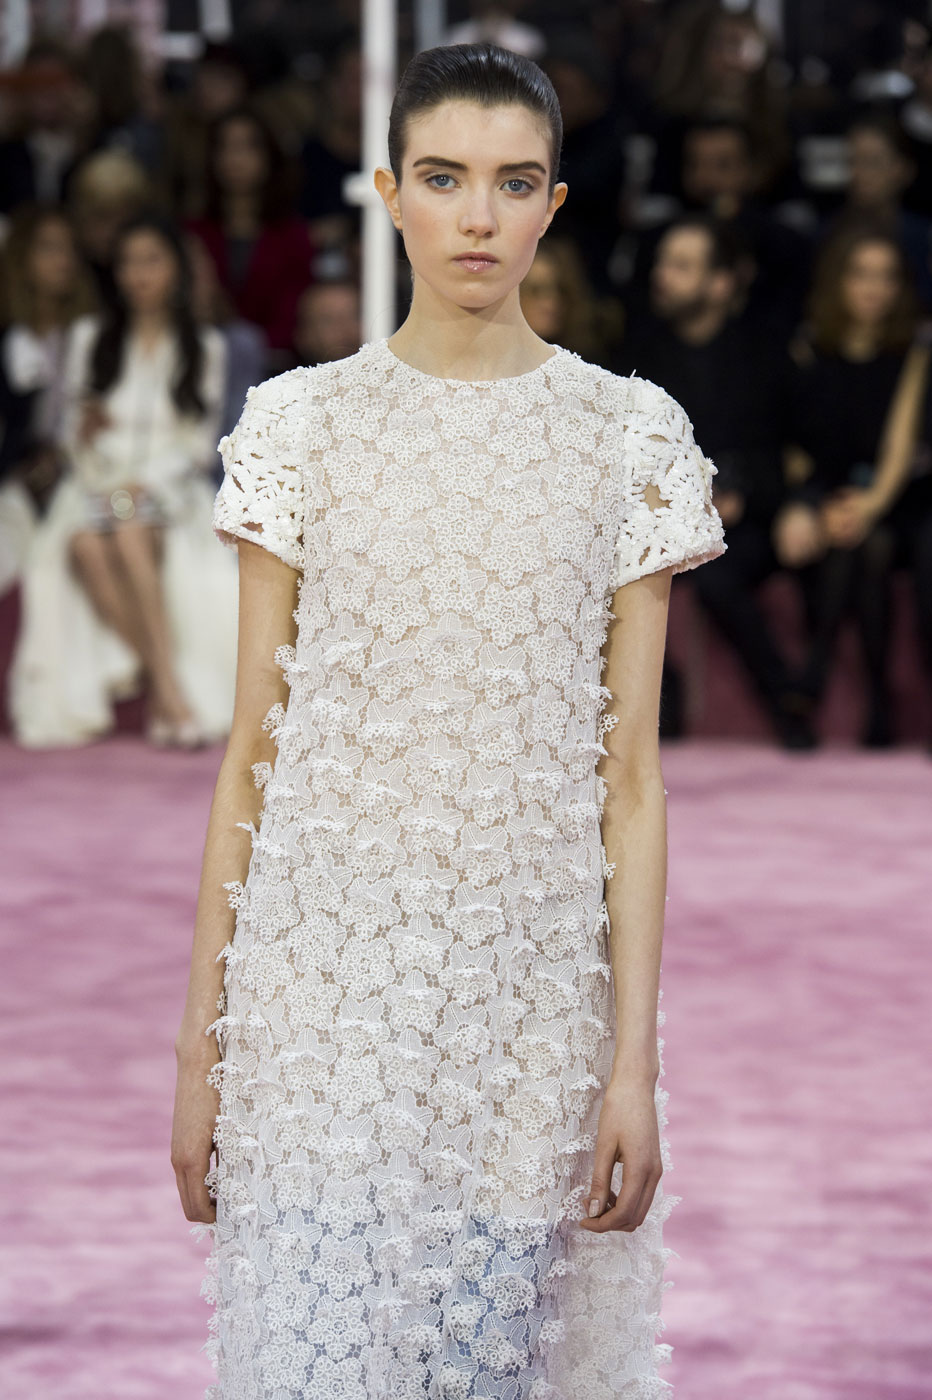 Christian-Dior-fashion-runway-show-haute-couture-paris-spring-summer-2015-the-impression-101